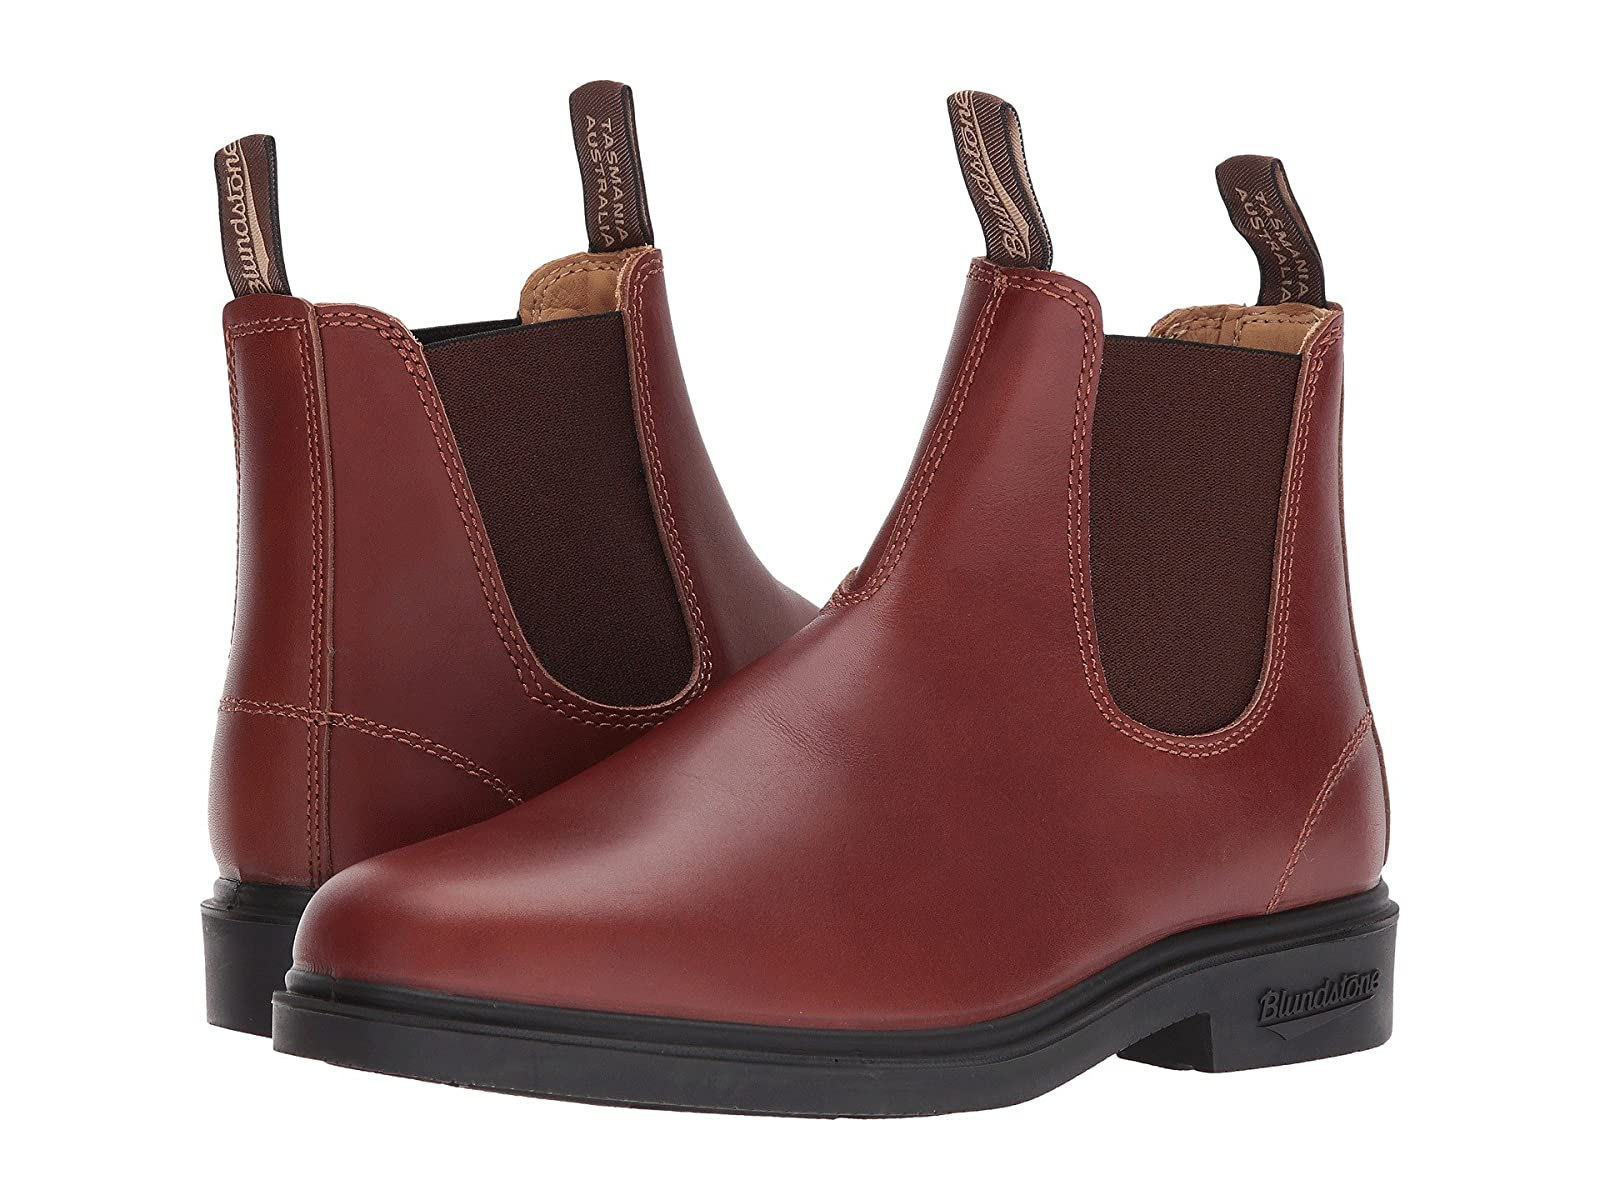 Blundstone BL1394Cheap and distinctive eye-catching shoes